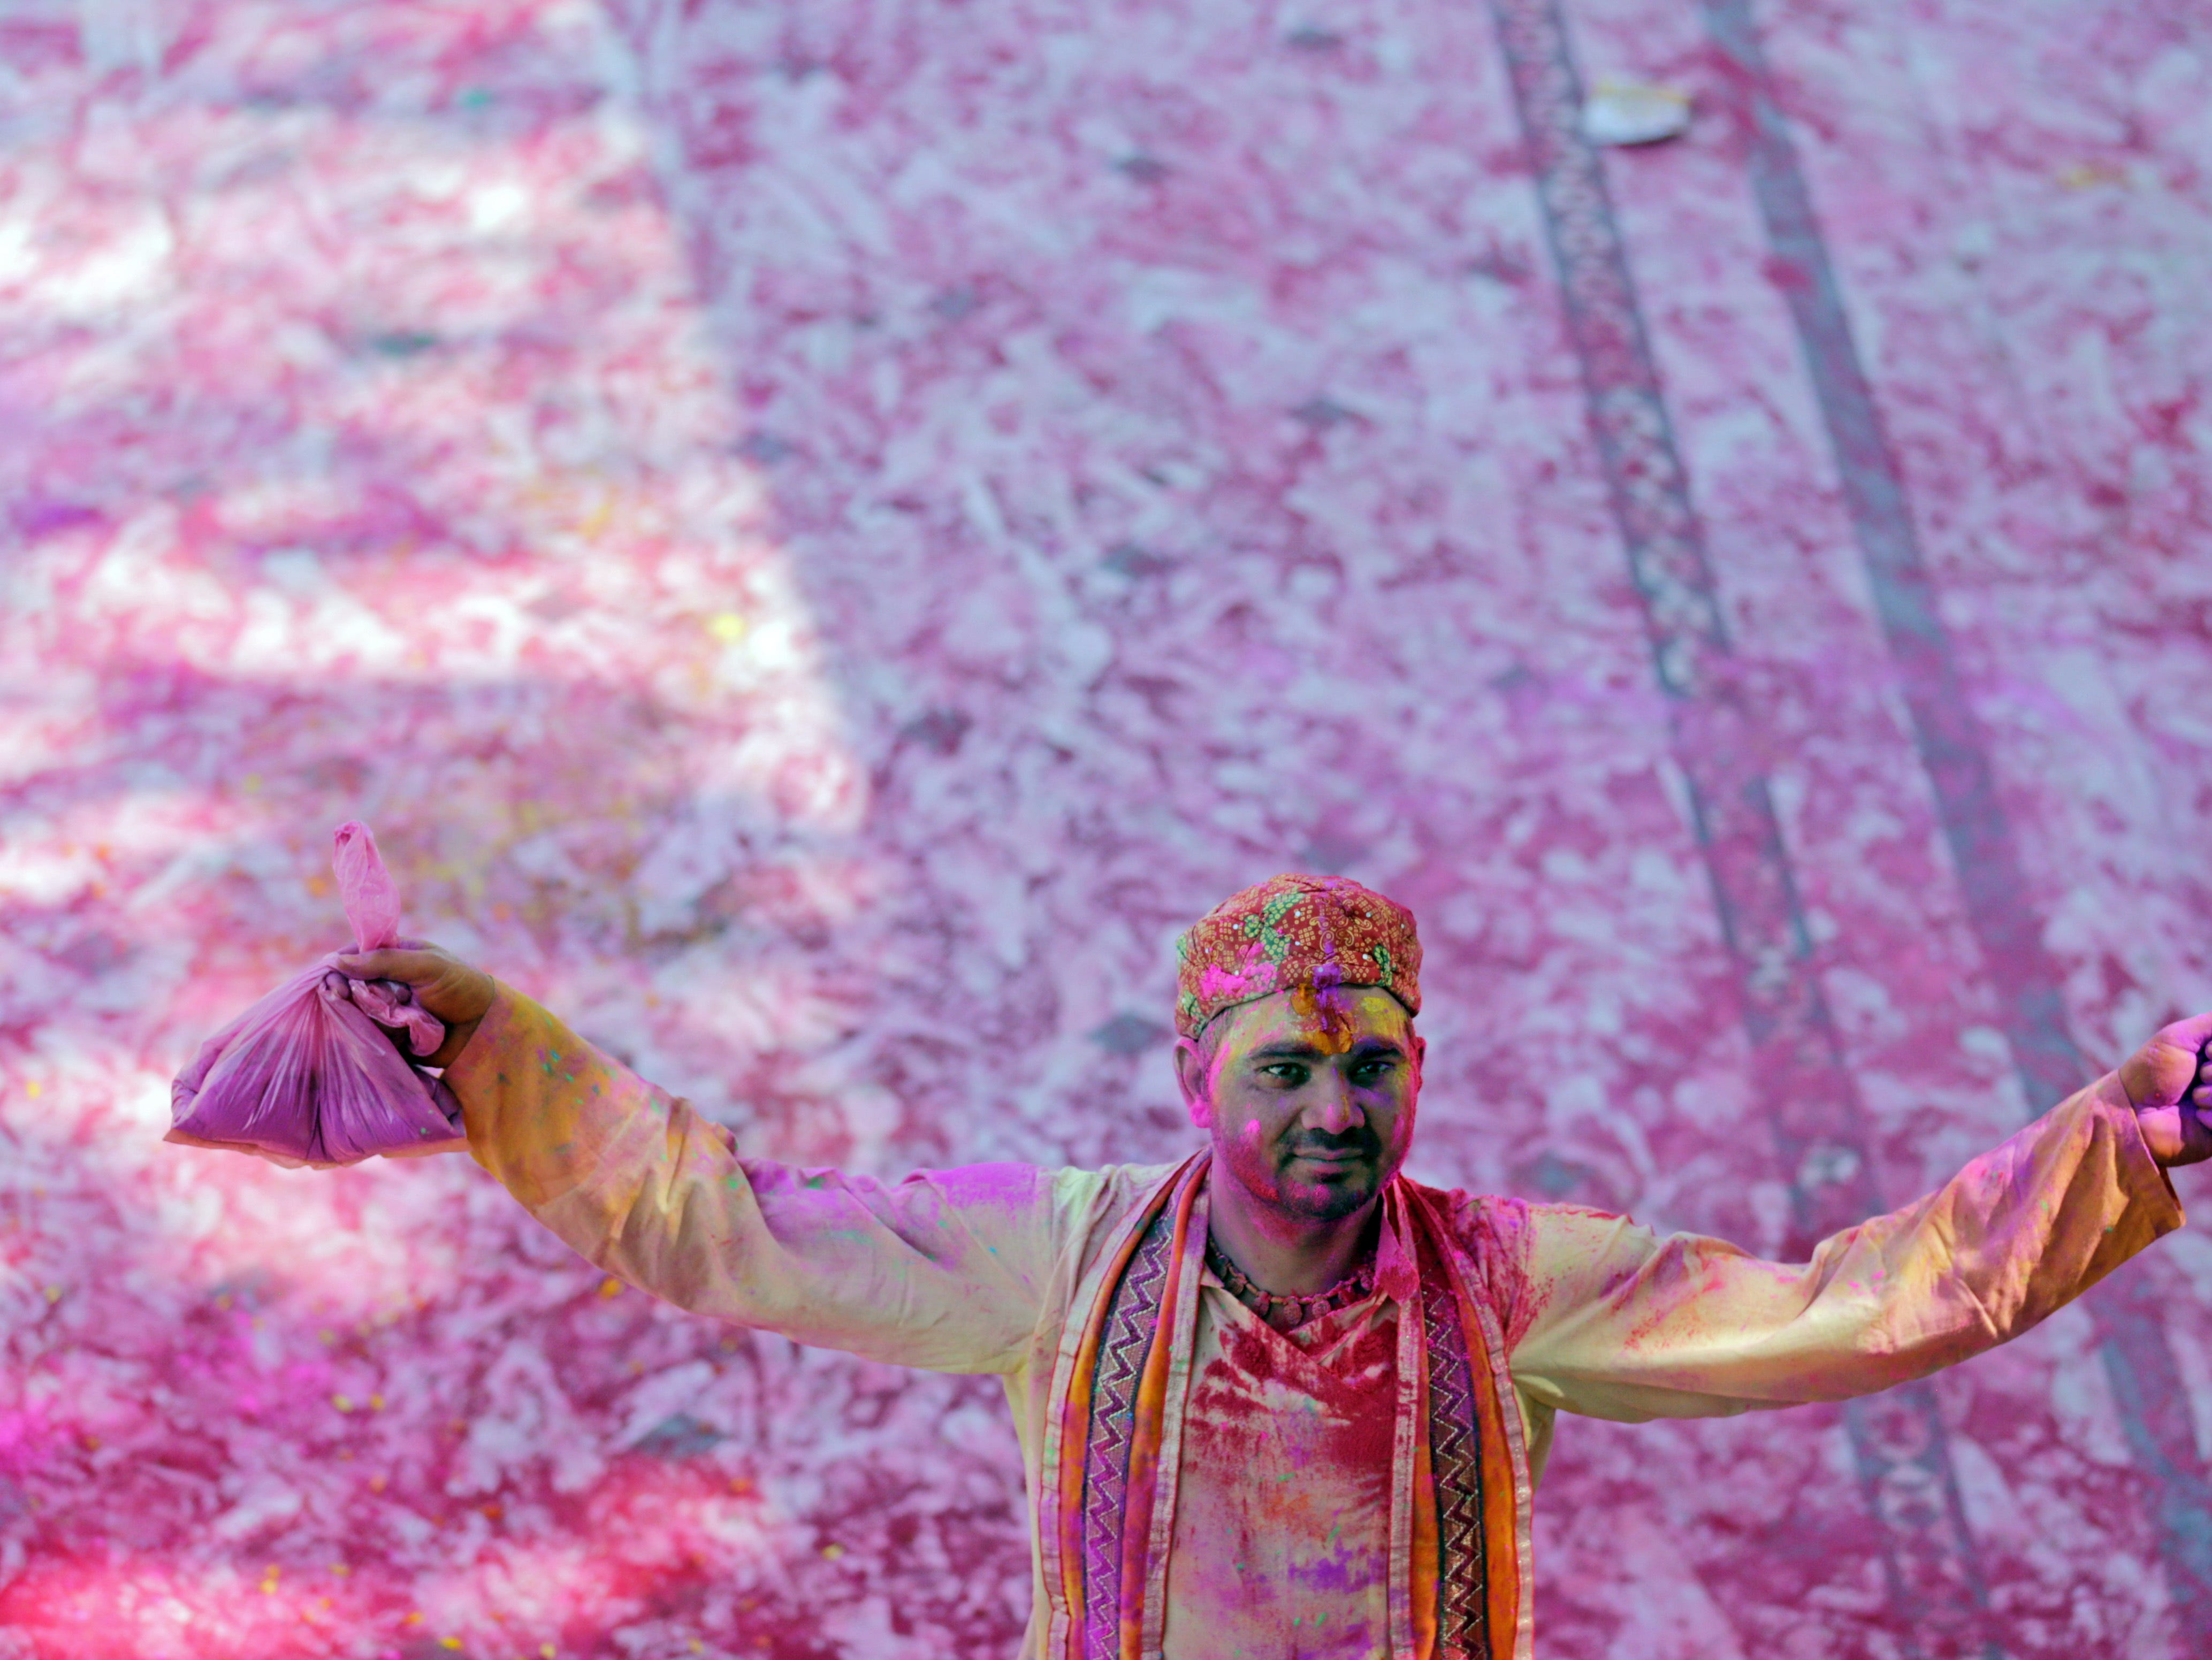 A Hindu priest is smeared with colors during Holi festival celebrations at Durgiana Temple in Amritsar, India on March 20, 2019.